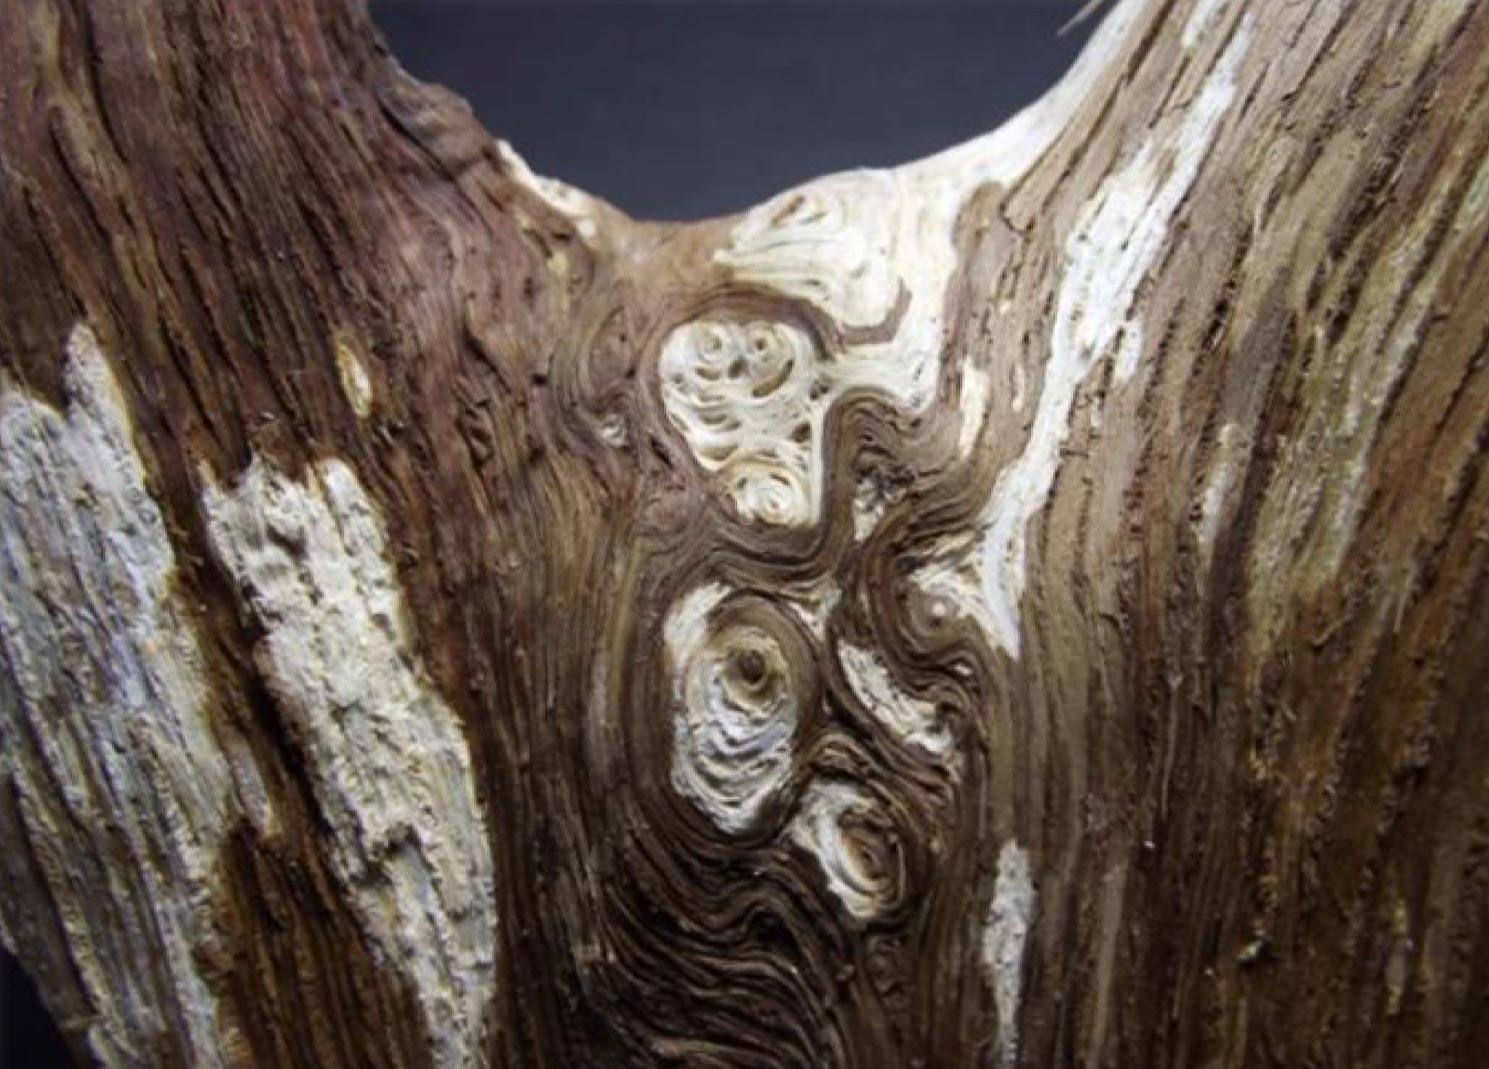 Whirled wood grain pattern forming an interlock between two limbs in a mature oak tree